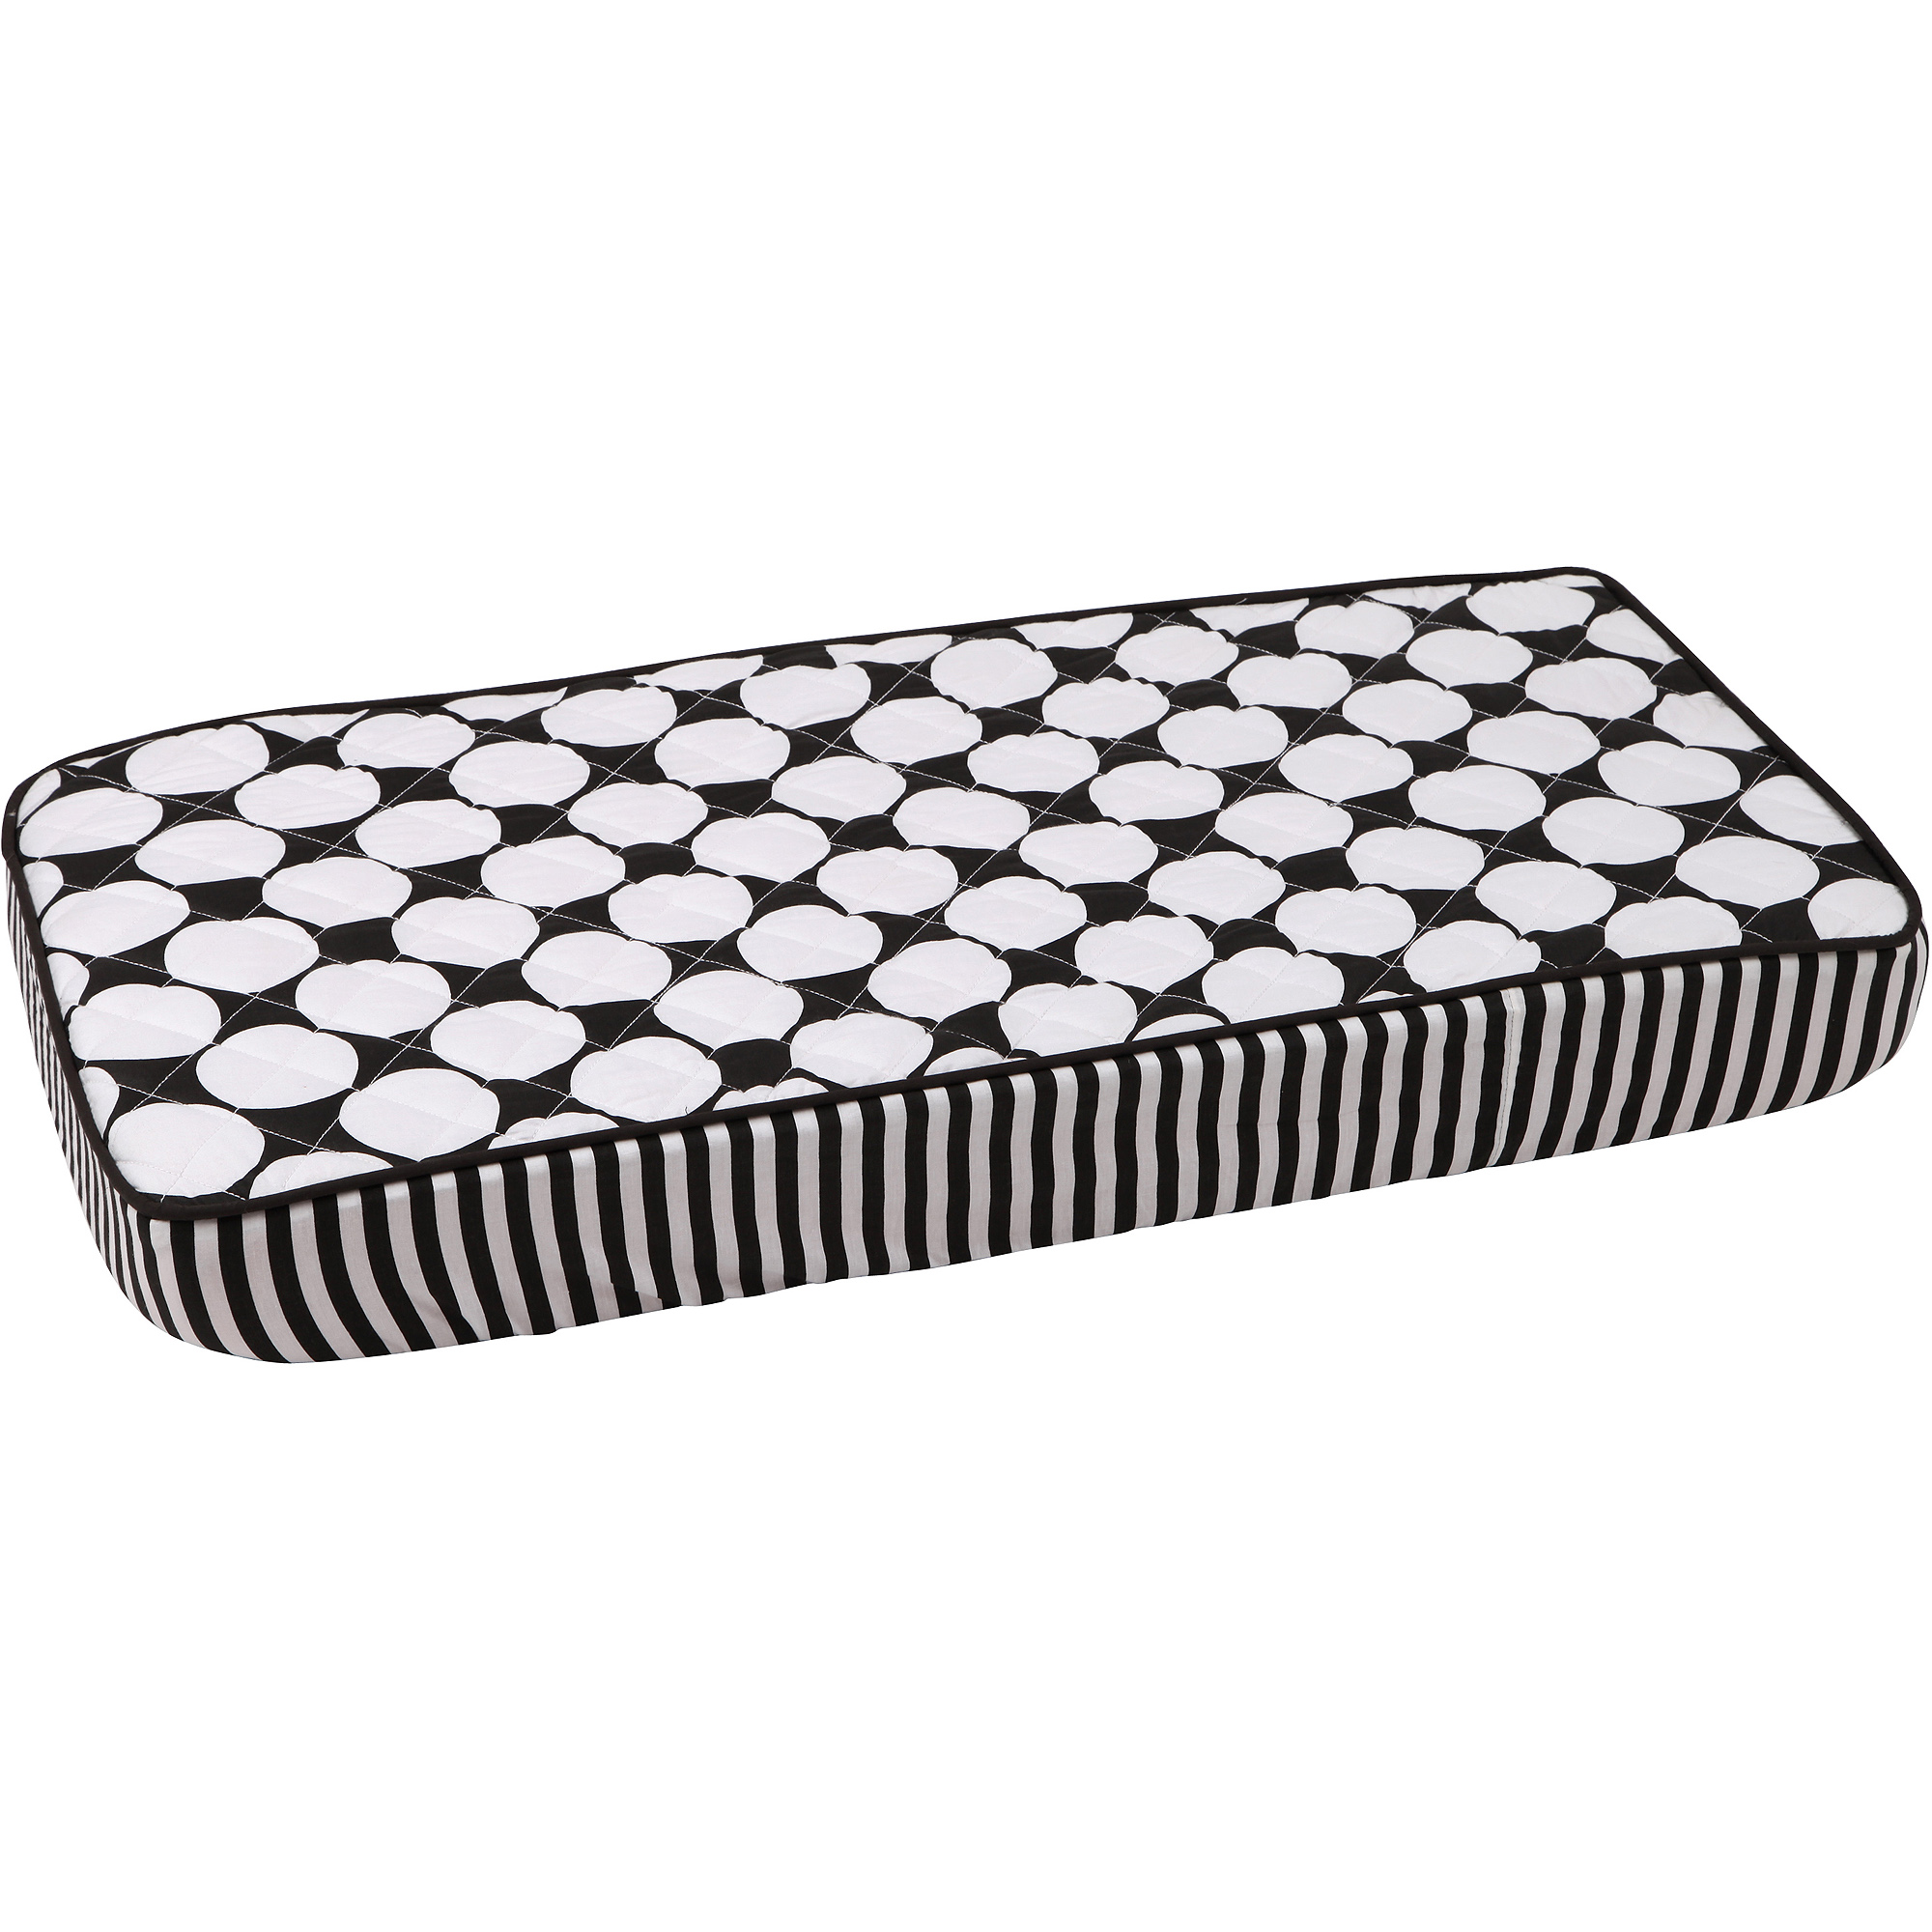 Bacati - Dots/Pin Large Dots Quilted Top 100% Cotton Percale with Polyester Batting Diaper Changing Pad Cover, White/Black